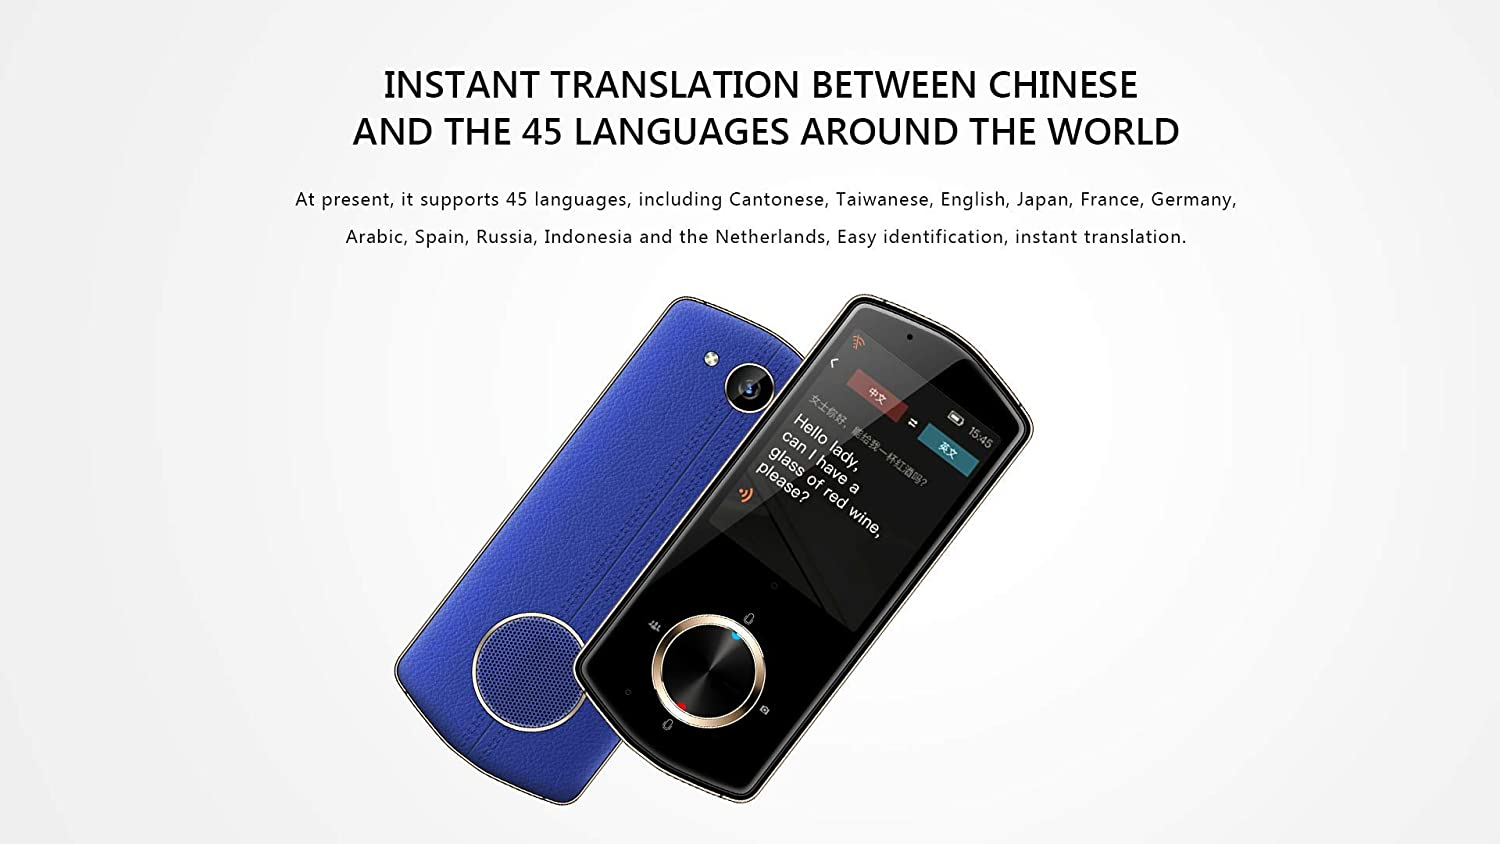 Blue DINGDING Smart Voice Photo Language Translator Device,2.8 Inch IPS Touch Screen 4G WiFi Two Way Real Time Instant Support 45 Languages Meeting Rohs//CE